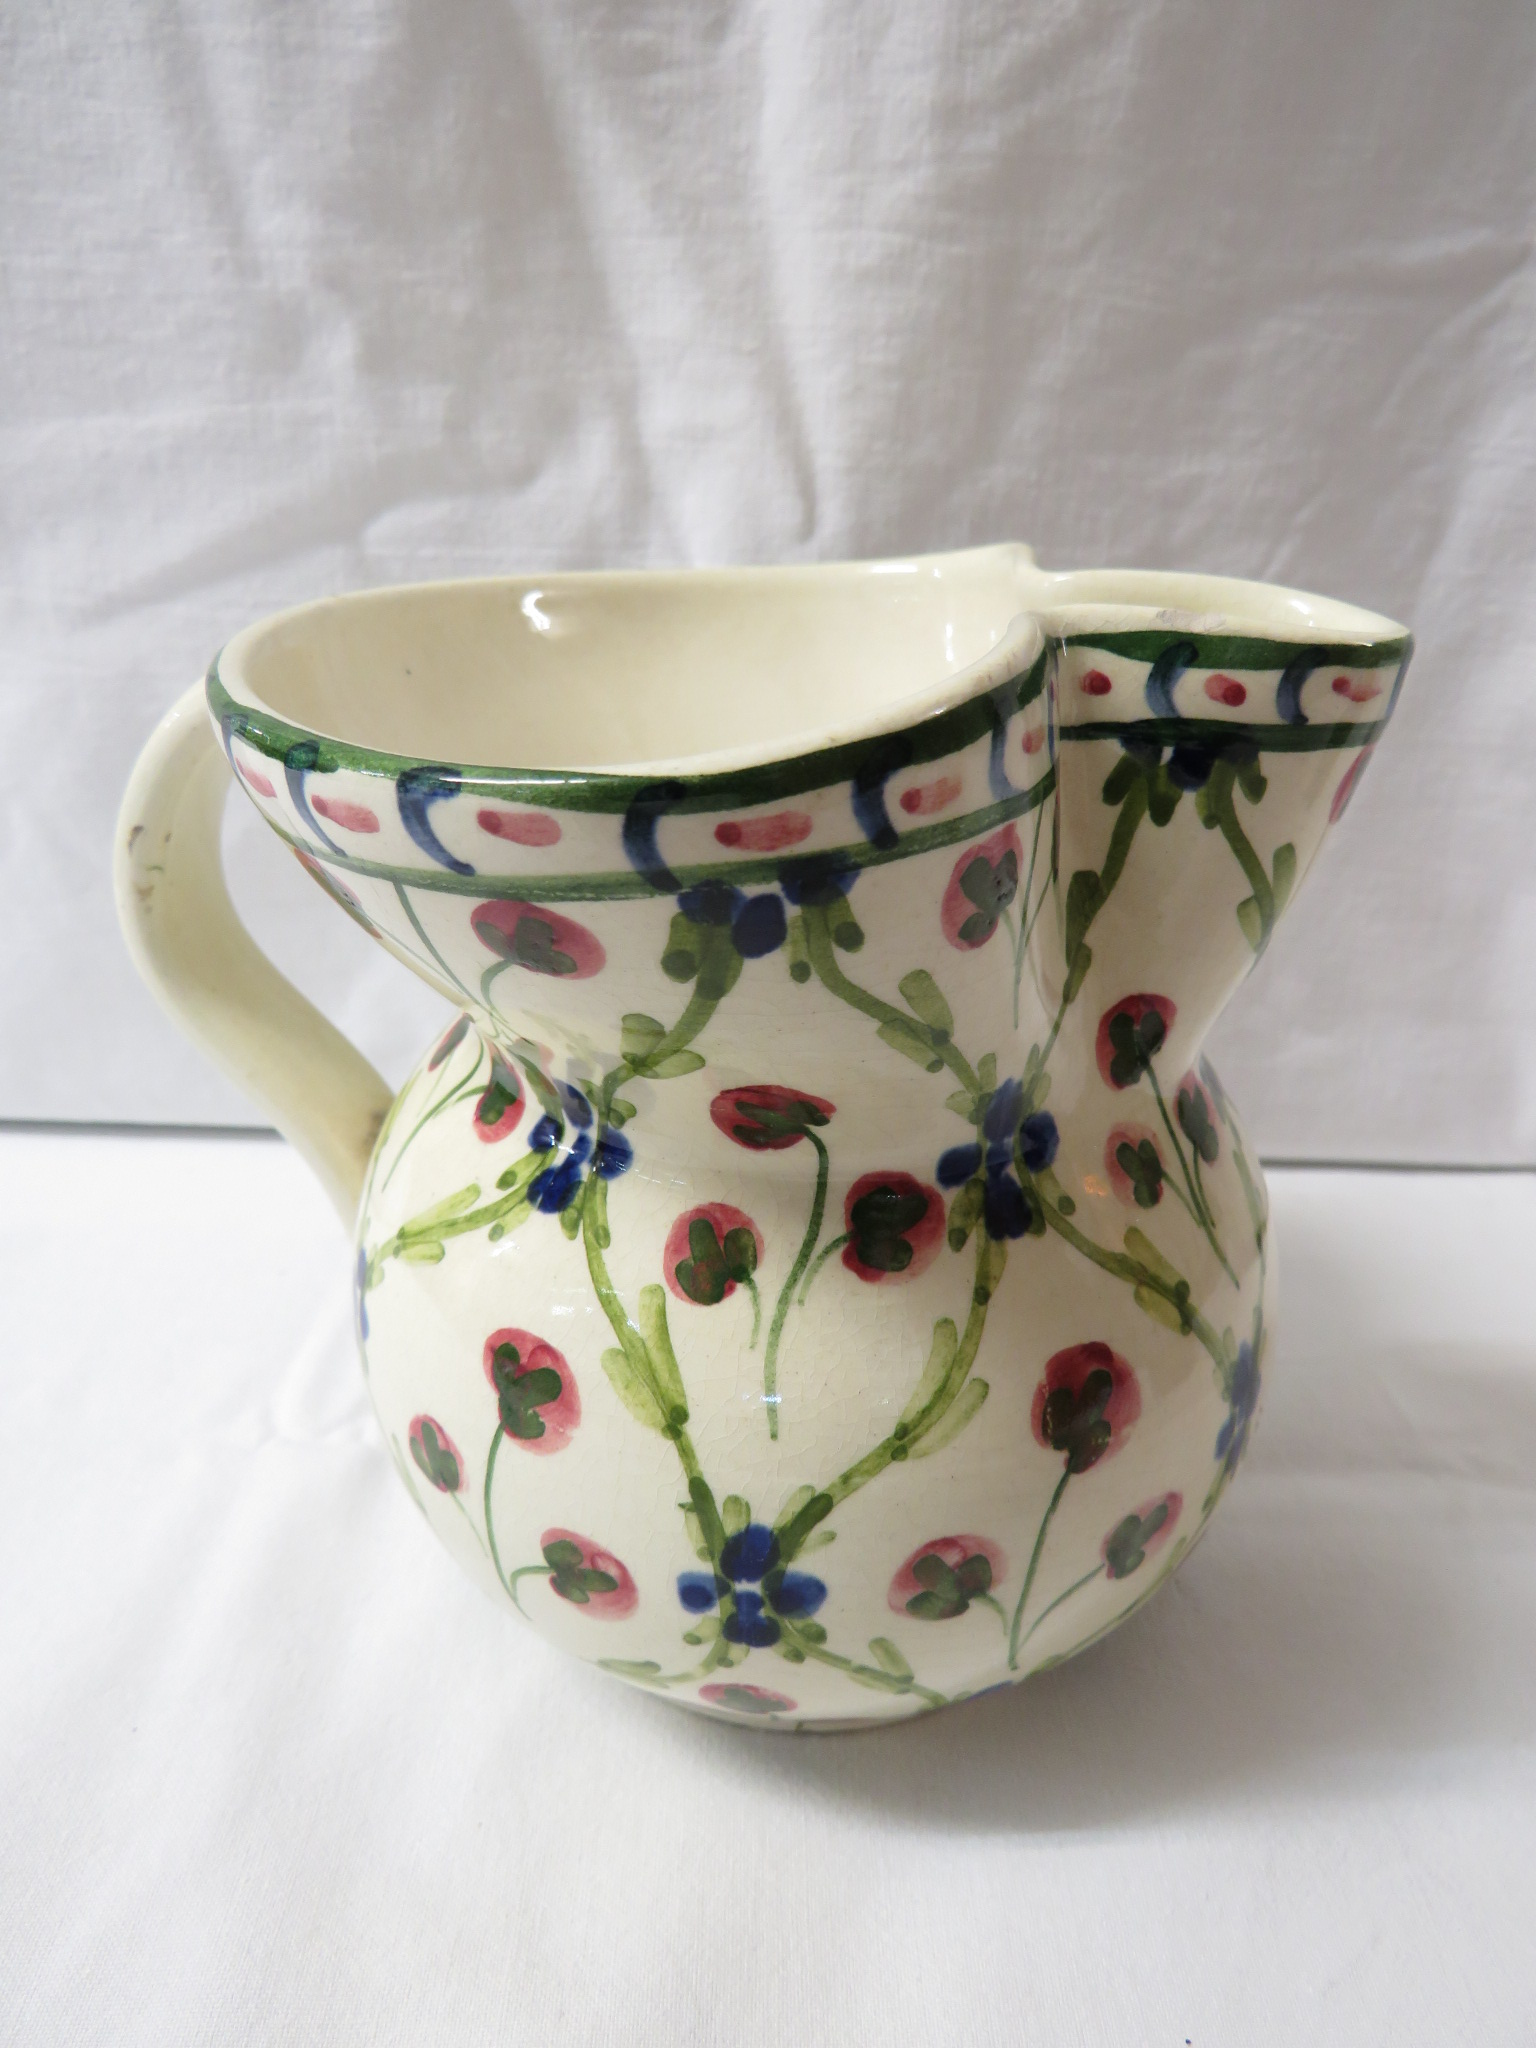 Lot 20 - A floral pottery milk jug marked Liberty London, cream ground and painted with a trellis pattern